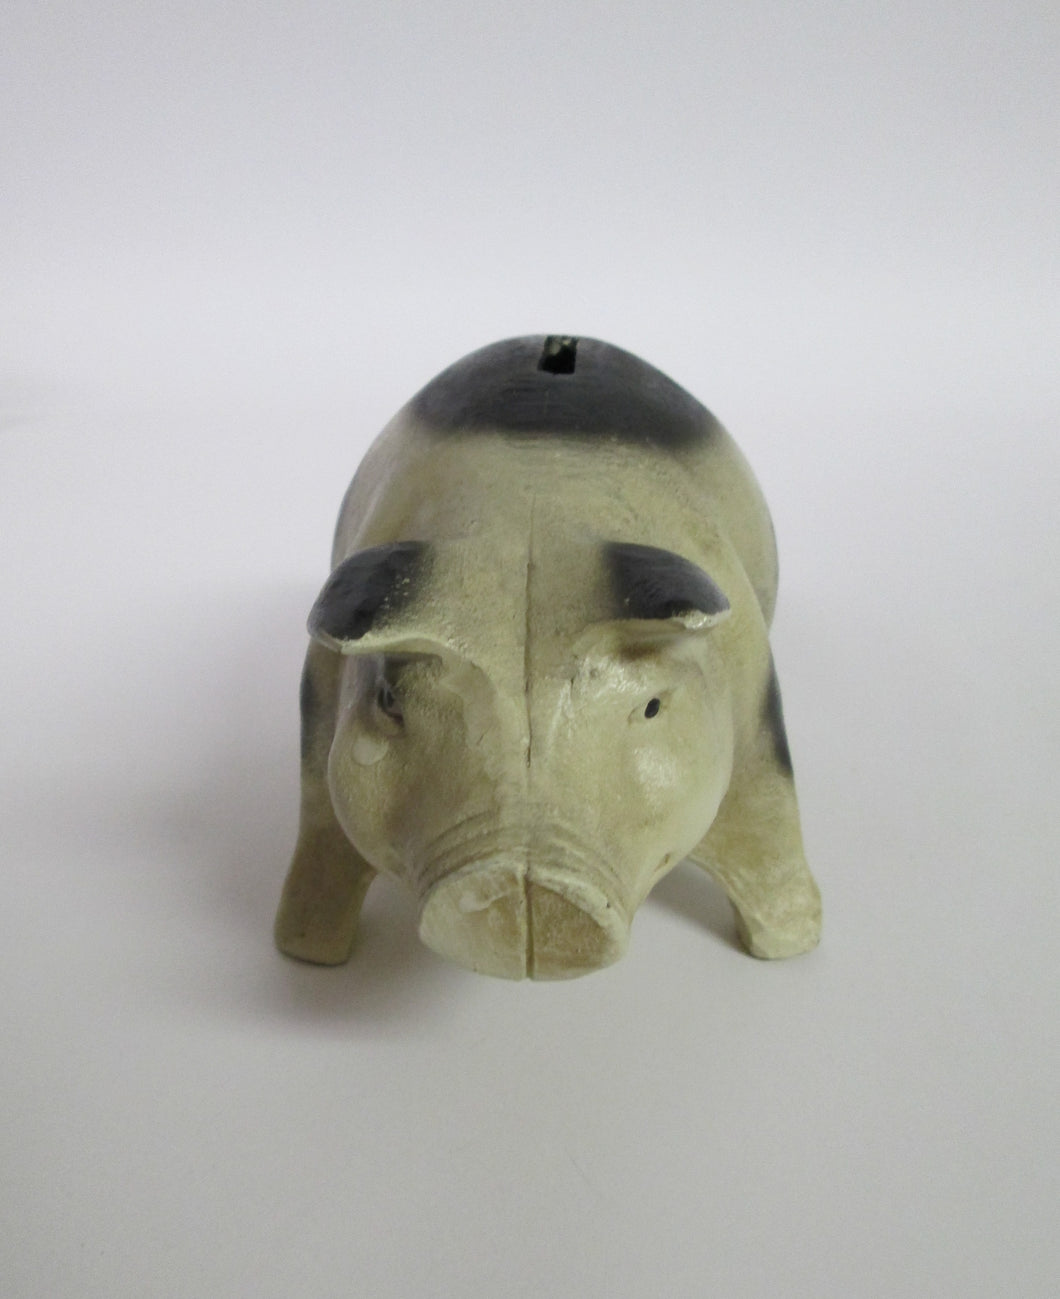 Cast Iron Piggy Bank with Rubber Stopper